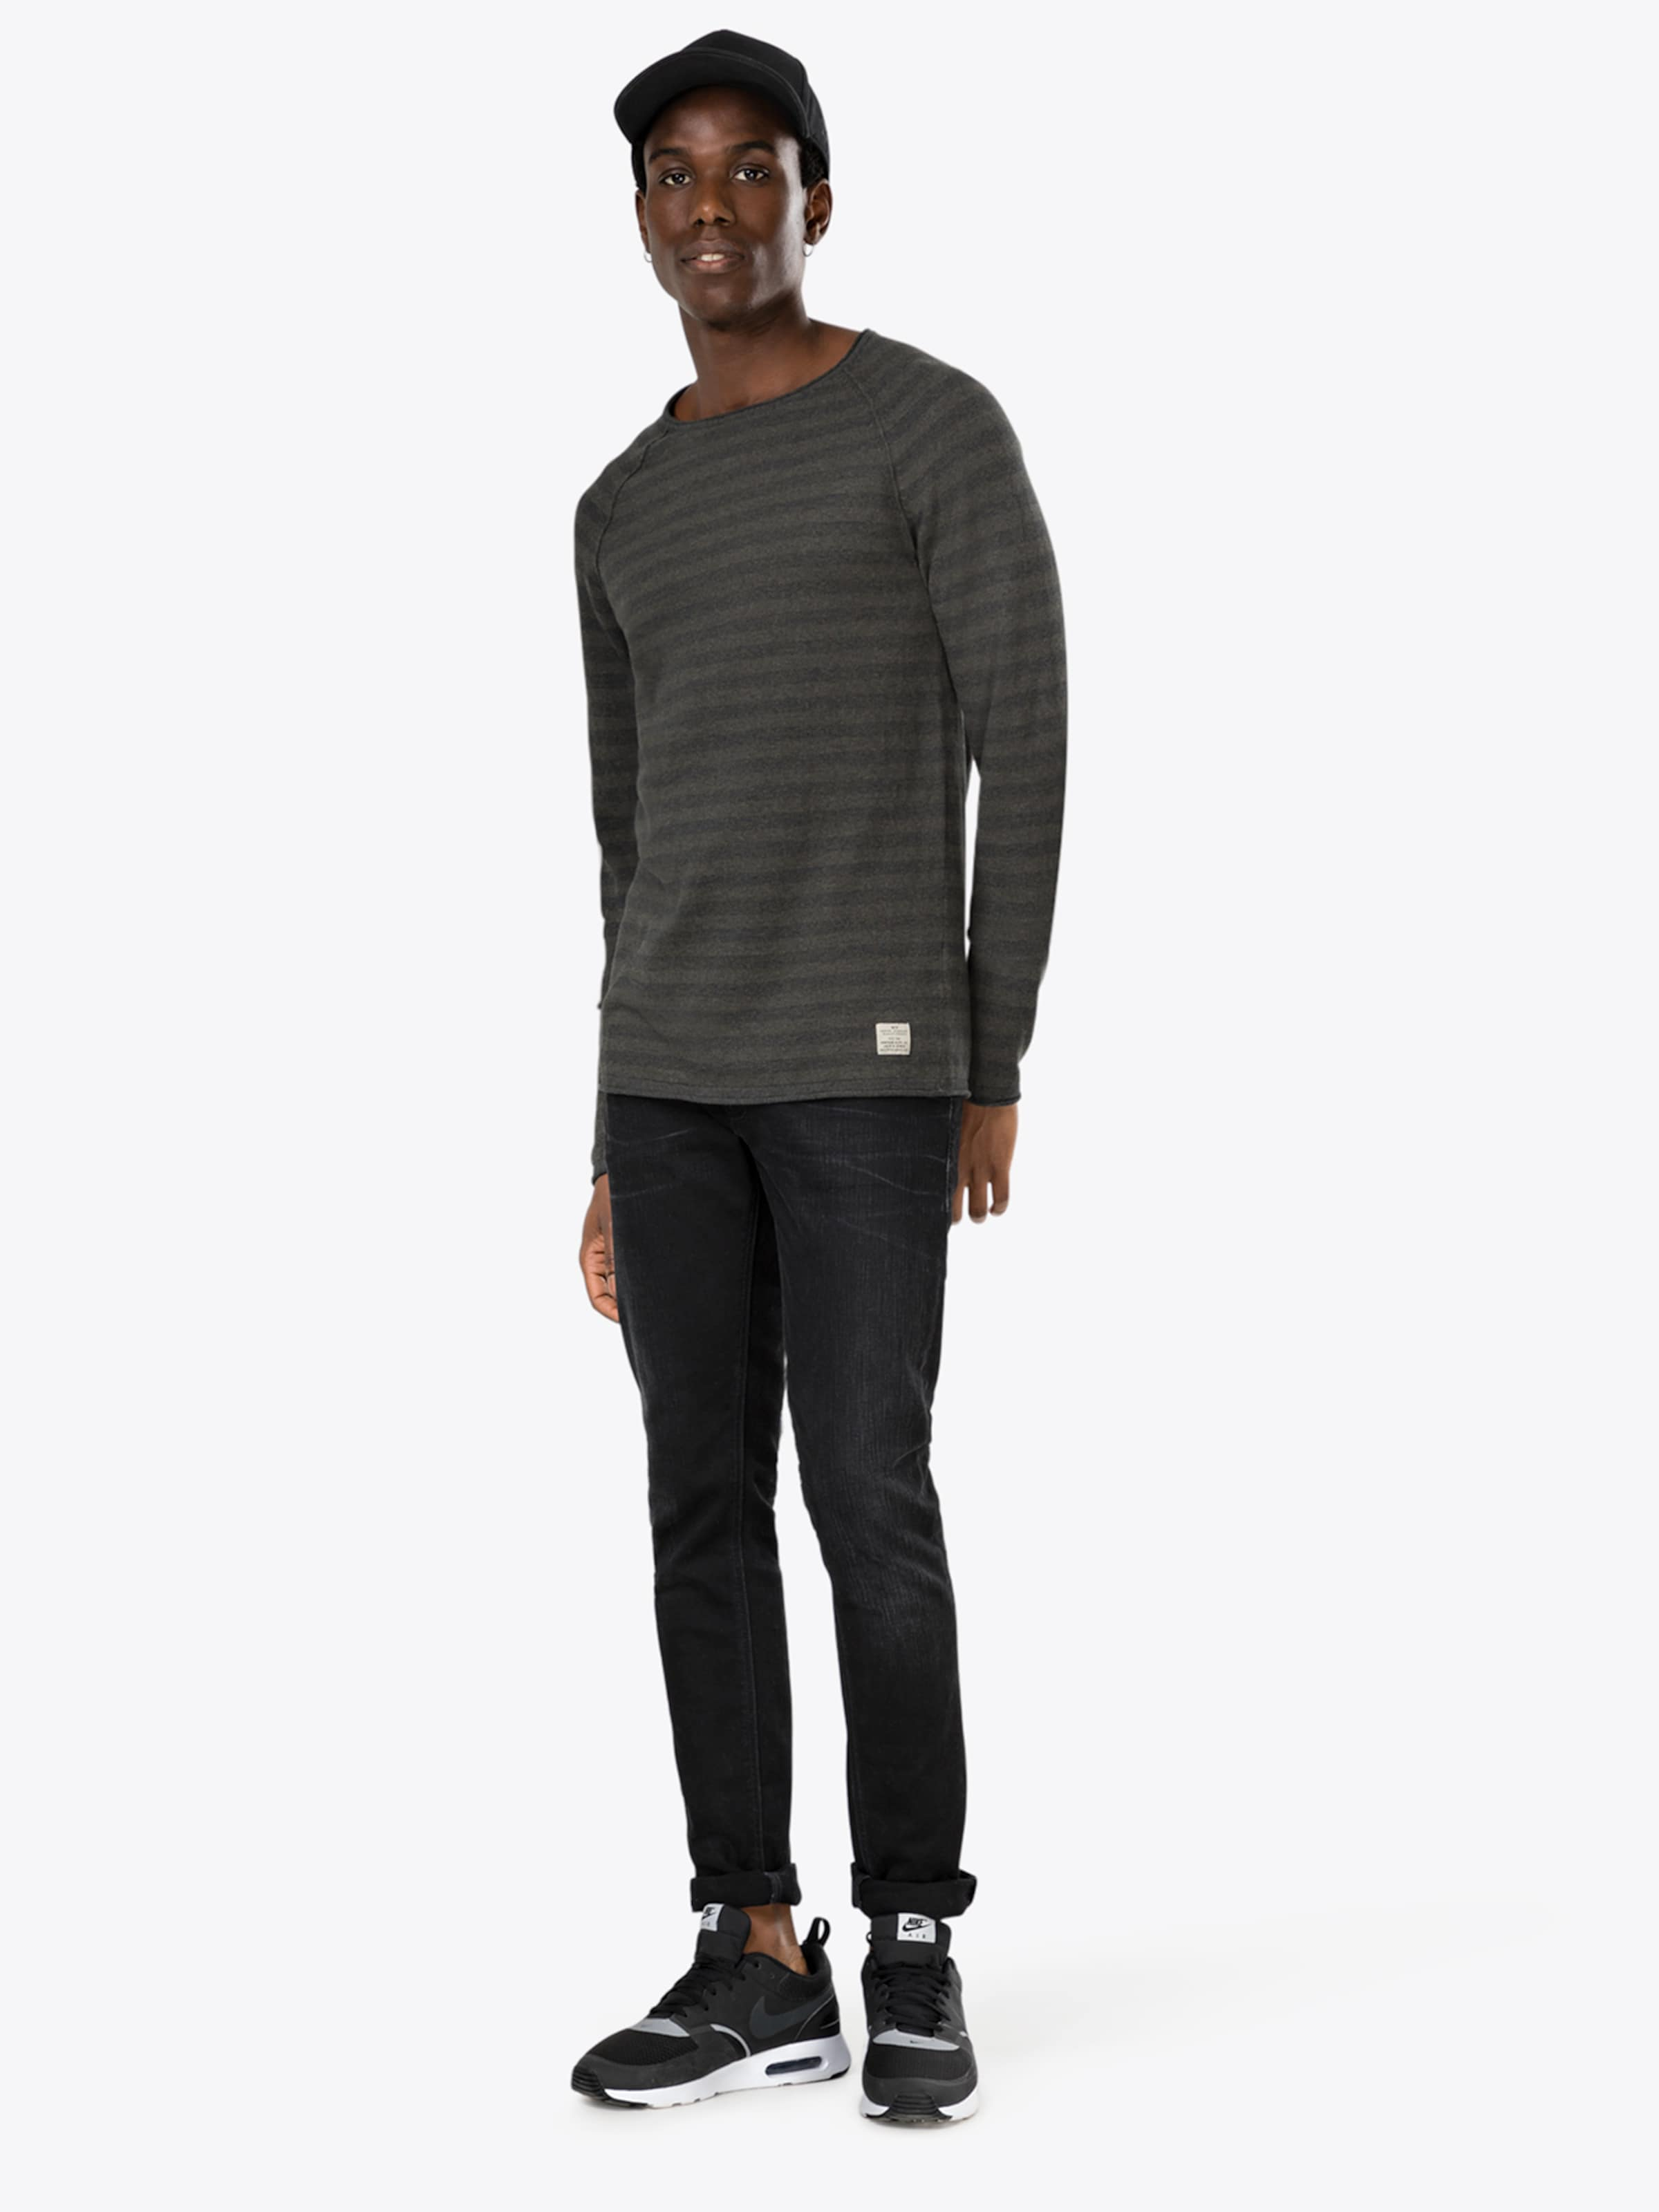 Jackamp; over Jones Crew Noos' Pull Knit Neck 'jjvcunion Kaki En VqzGLpjSUM